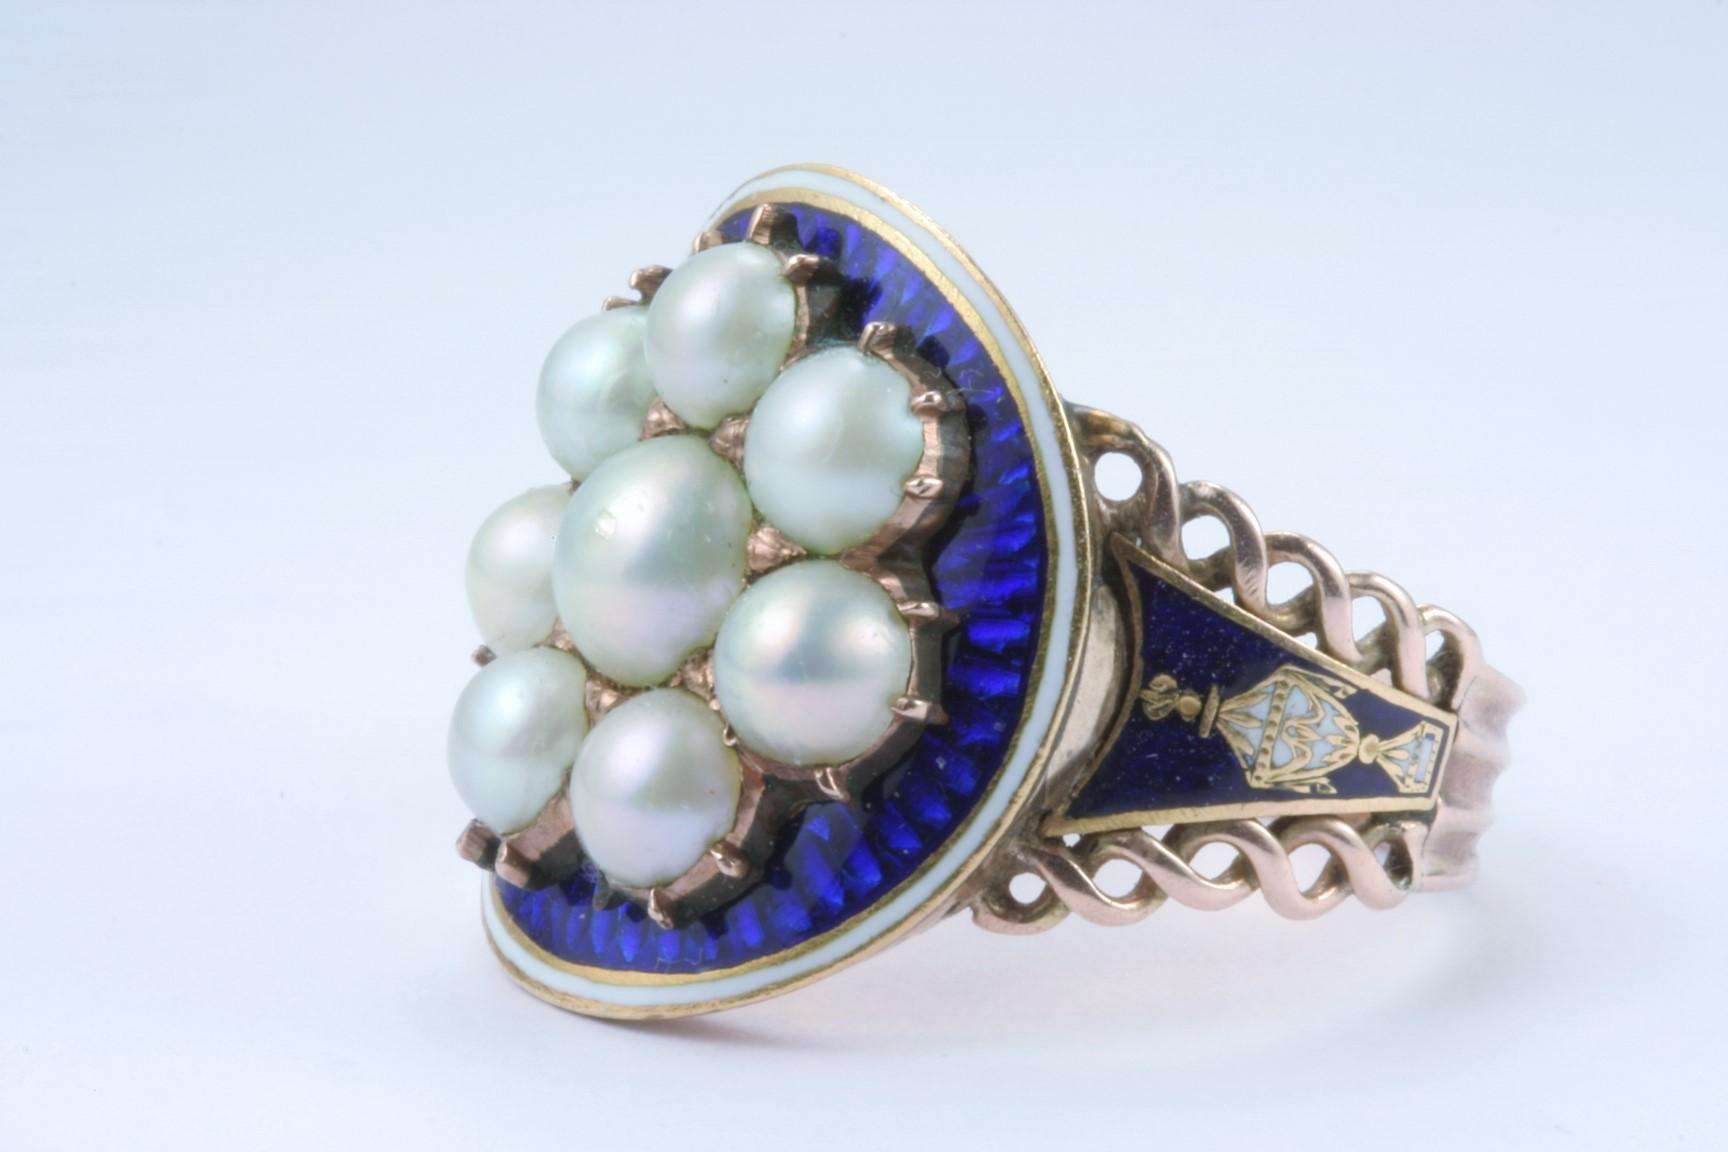 A Late 18th Century English Enamel and Natural Pearl Mourning Ring